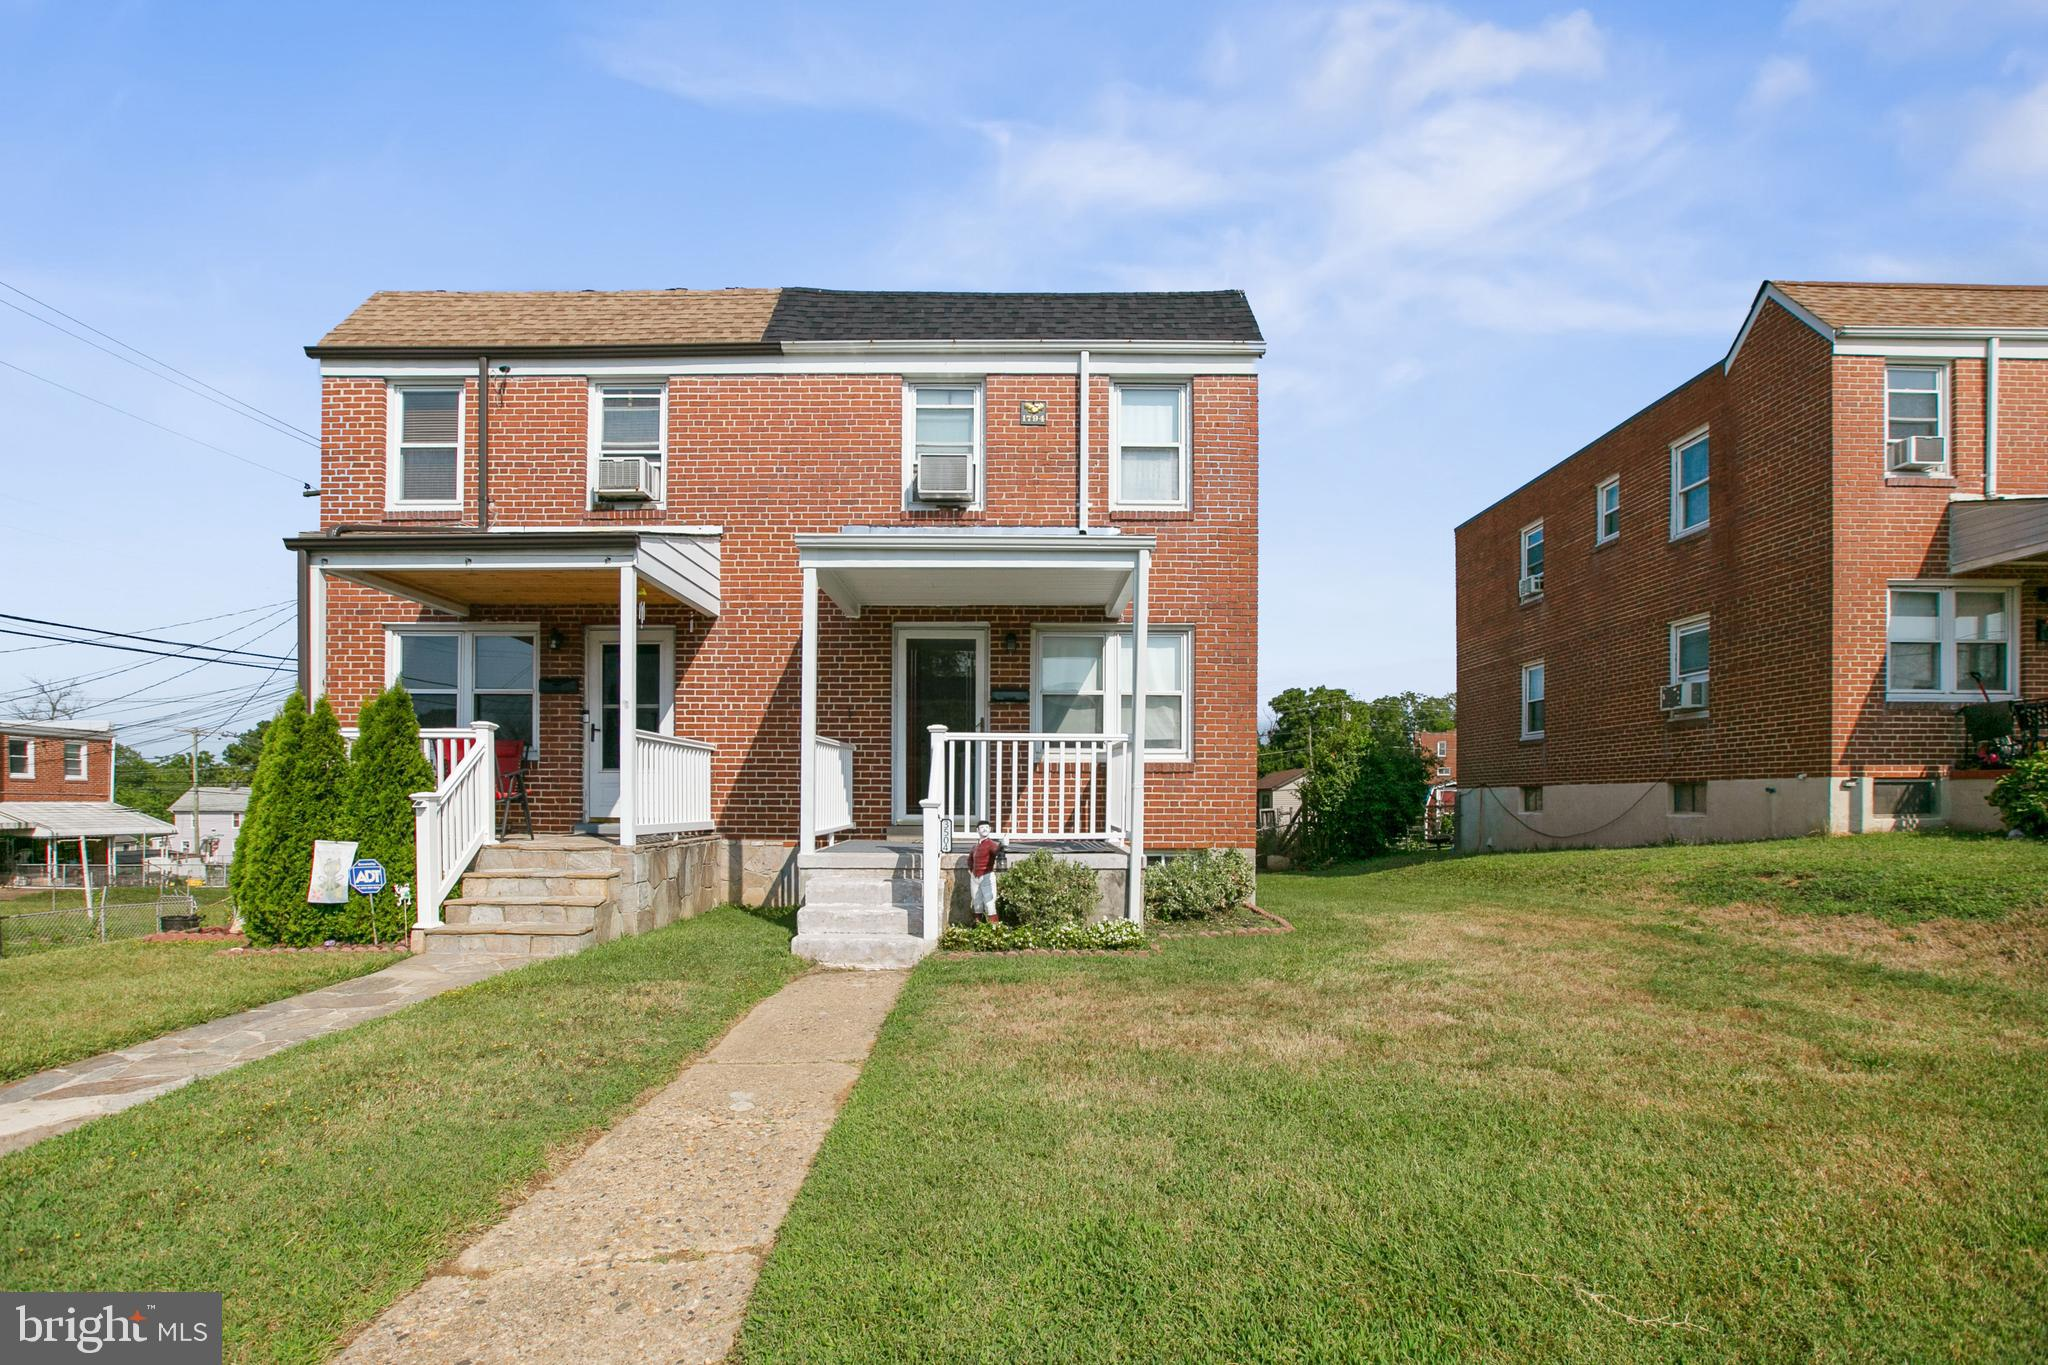 Welcome home to your brick 3 Bed 1.5 Bath duplex located in Violetville. The traditional floor plan features a Living Room, Dining Room, Kitchen, and Family Room on the main level. The top floor offers 3 bedrooms with ceiling fans and a Full Bath. The lower level is an open concept Recreation Room and Utility Space with a toilet.  Book your appointment today.